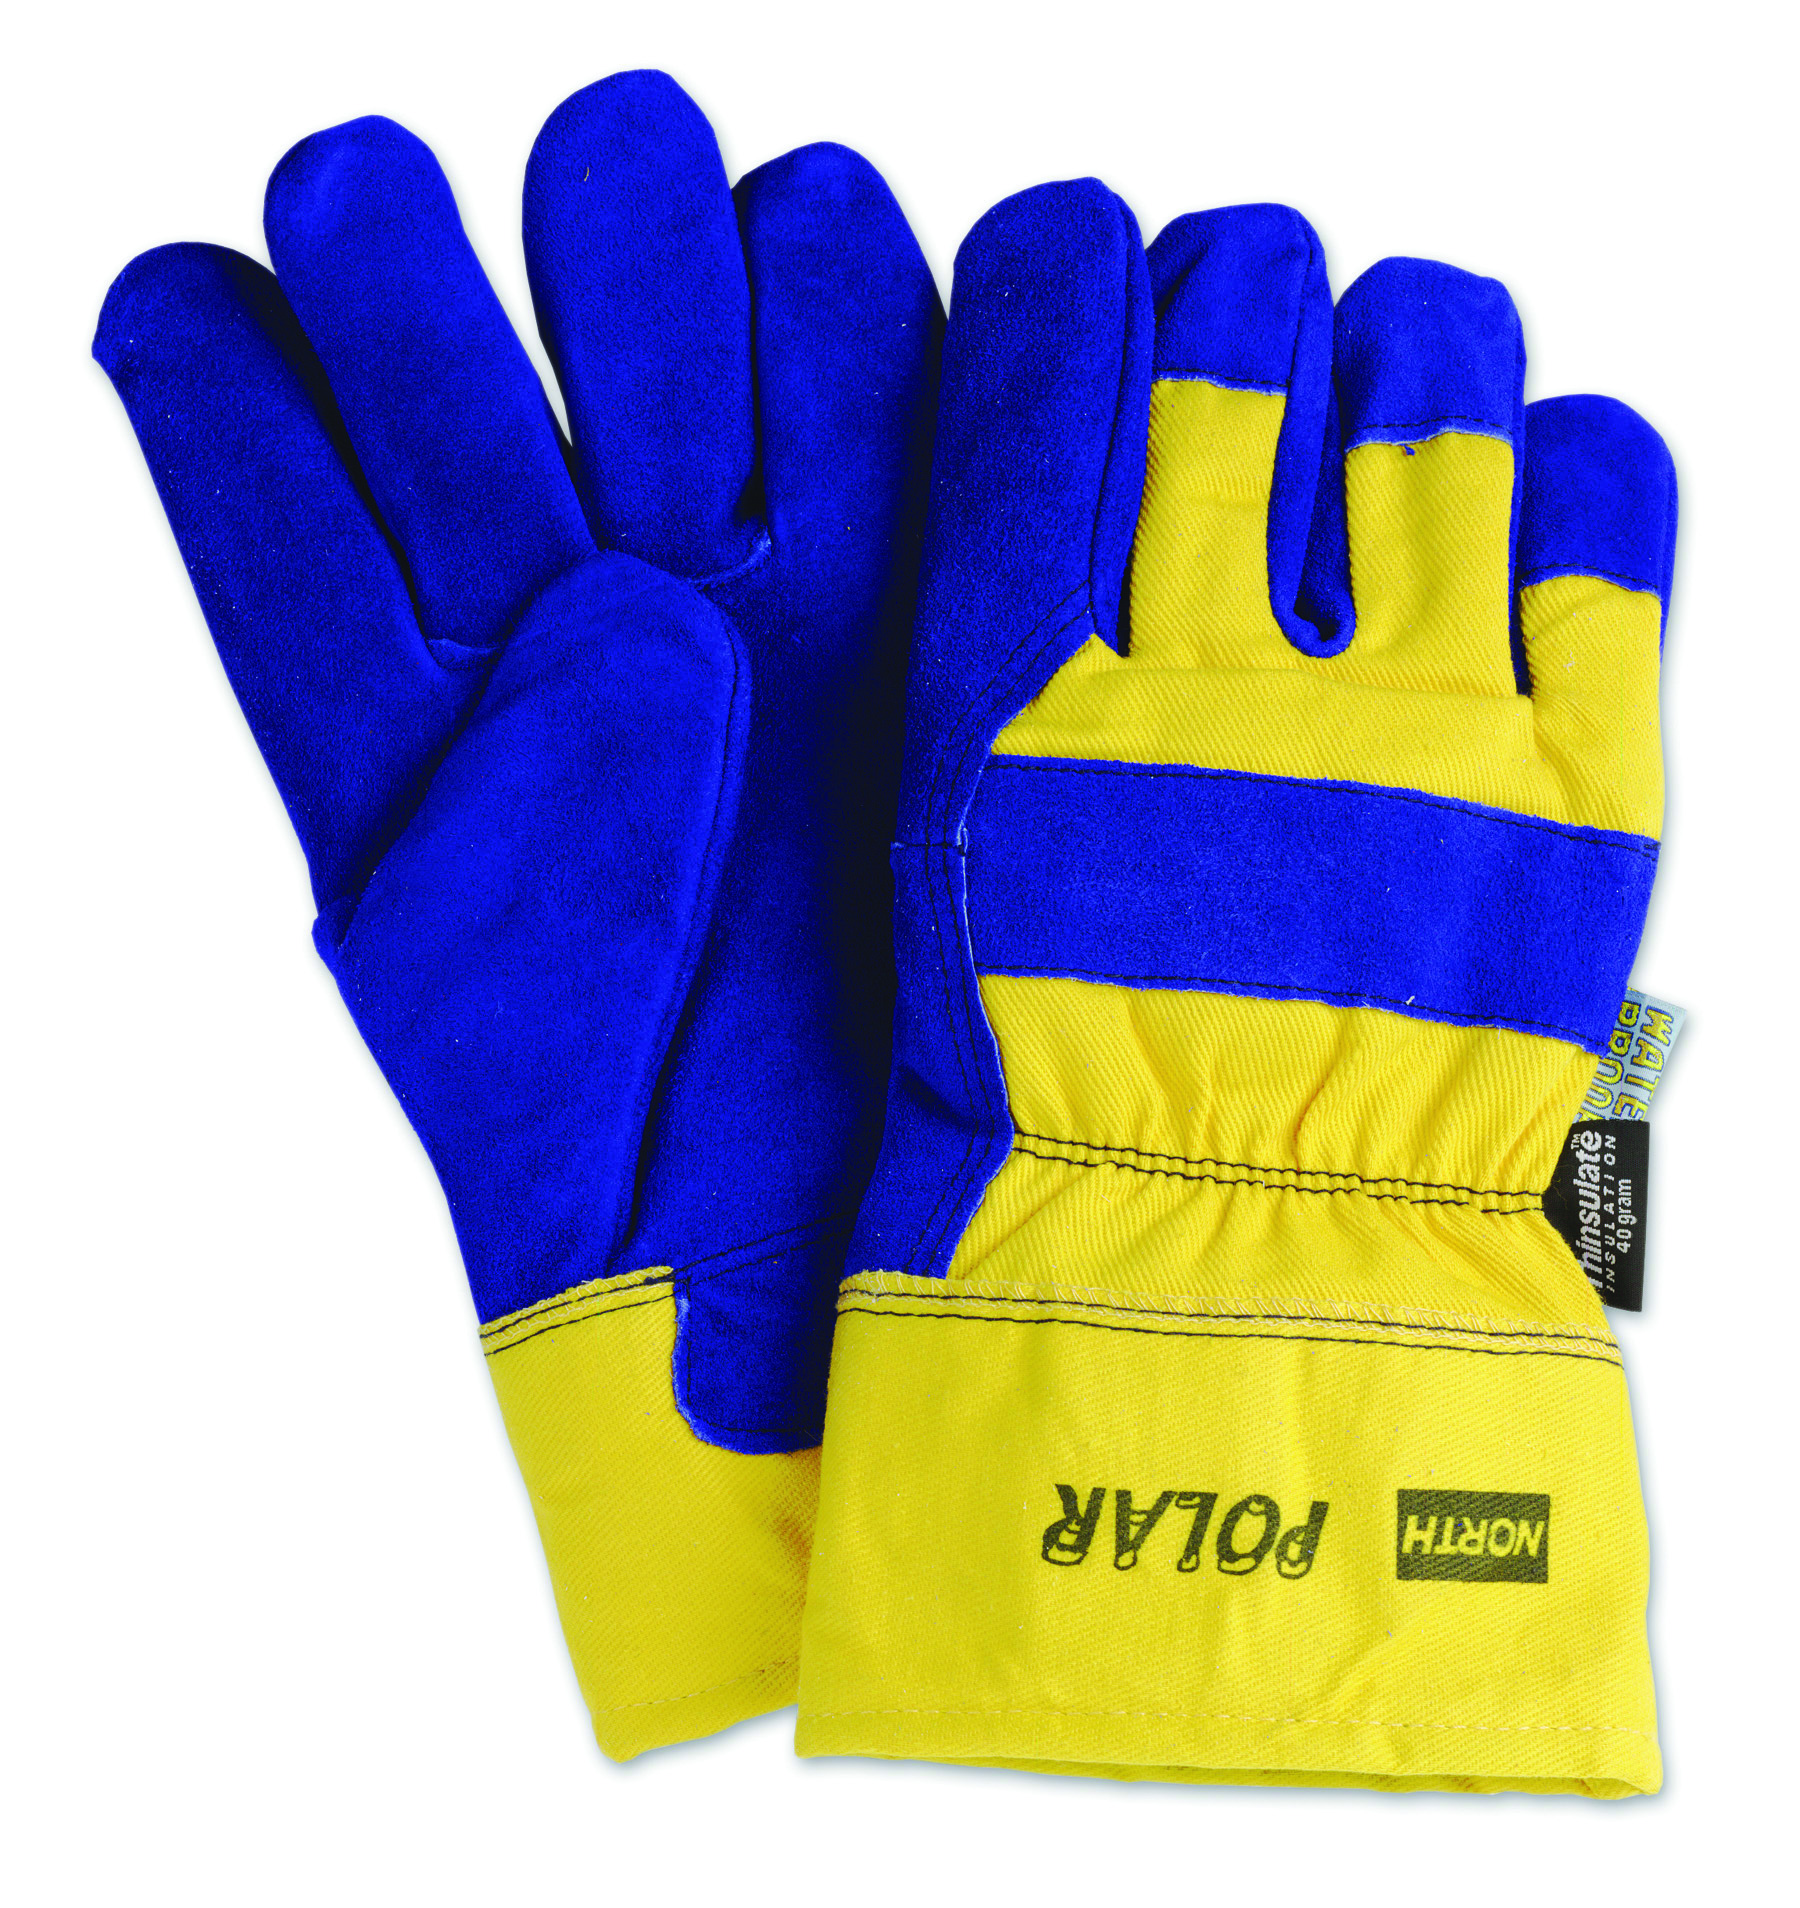 70/6465NK - North Polar® Insulated Leather Palm Gloves-North Polar® Insulated Leather Palm Gloves-Blue & Yellow----UOM: 12/PK